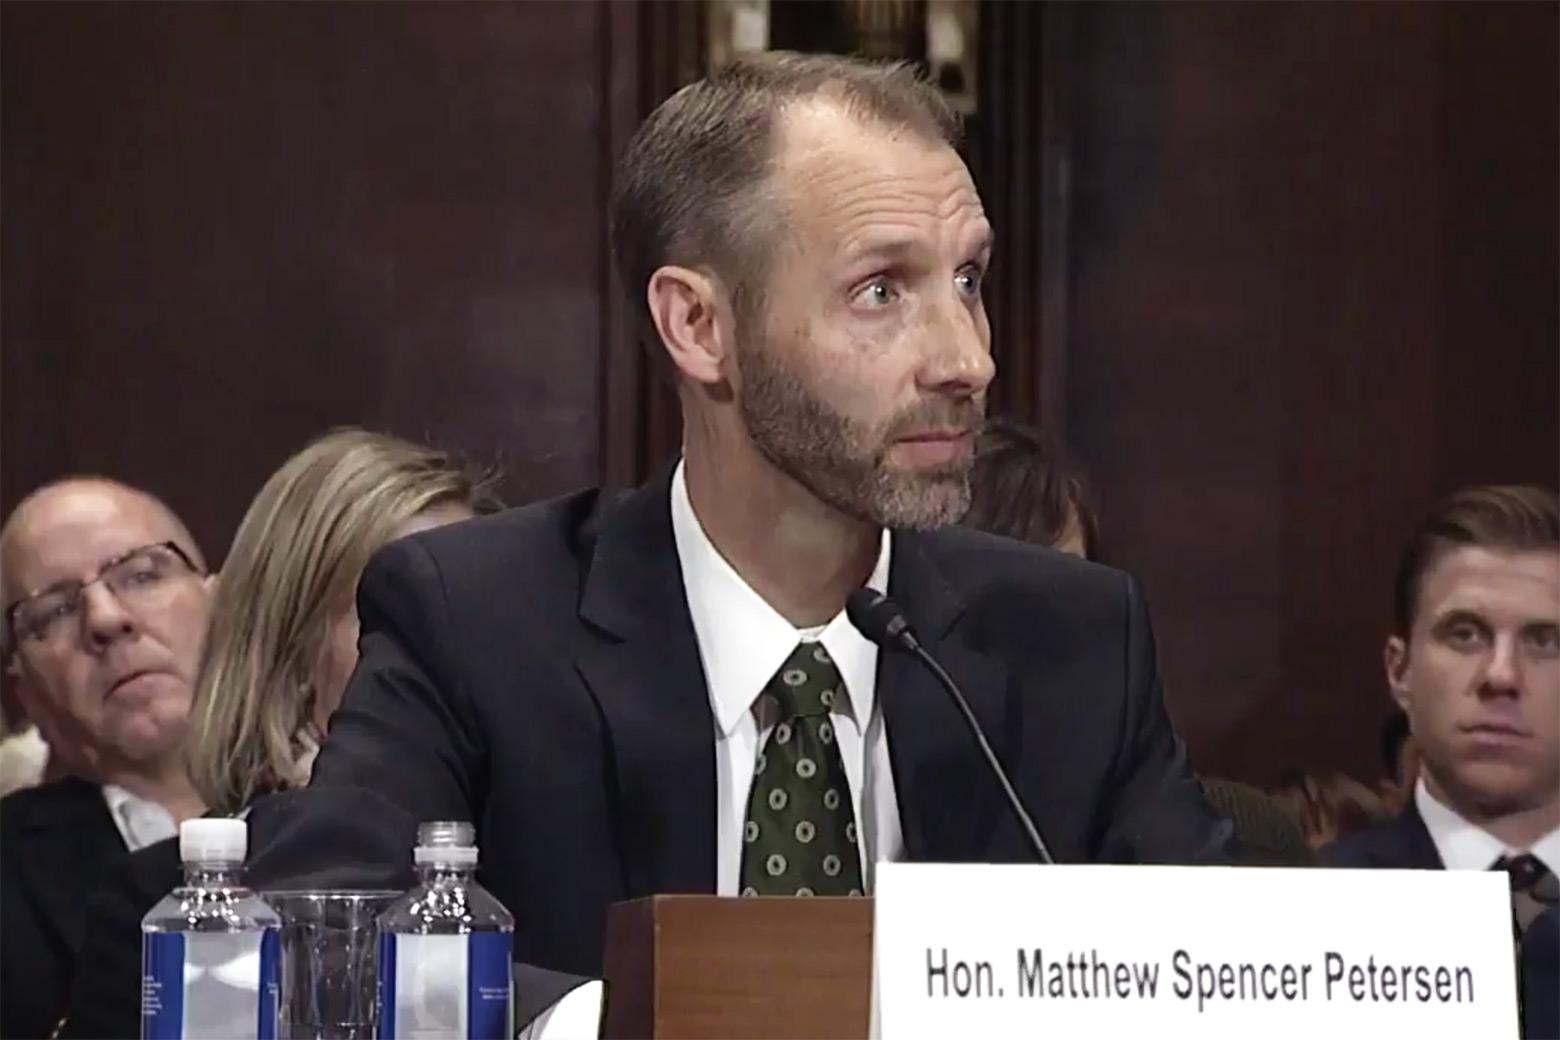 Matthew Spencer Petersen answers questions during a hearing of the Senate Judiciary Committee on Wednesday.